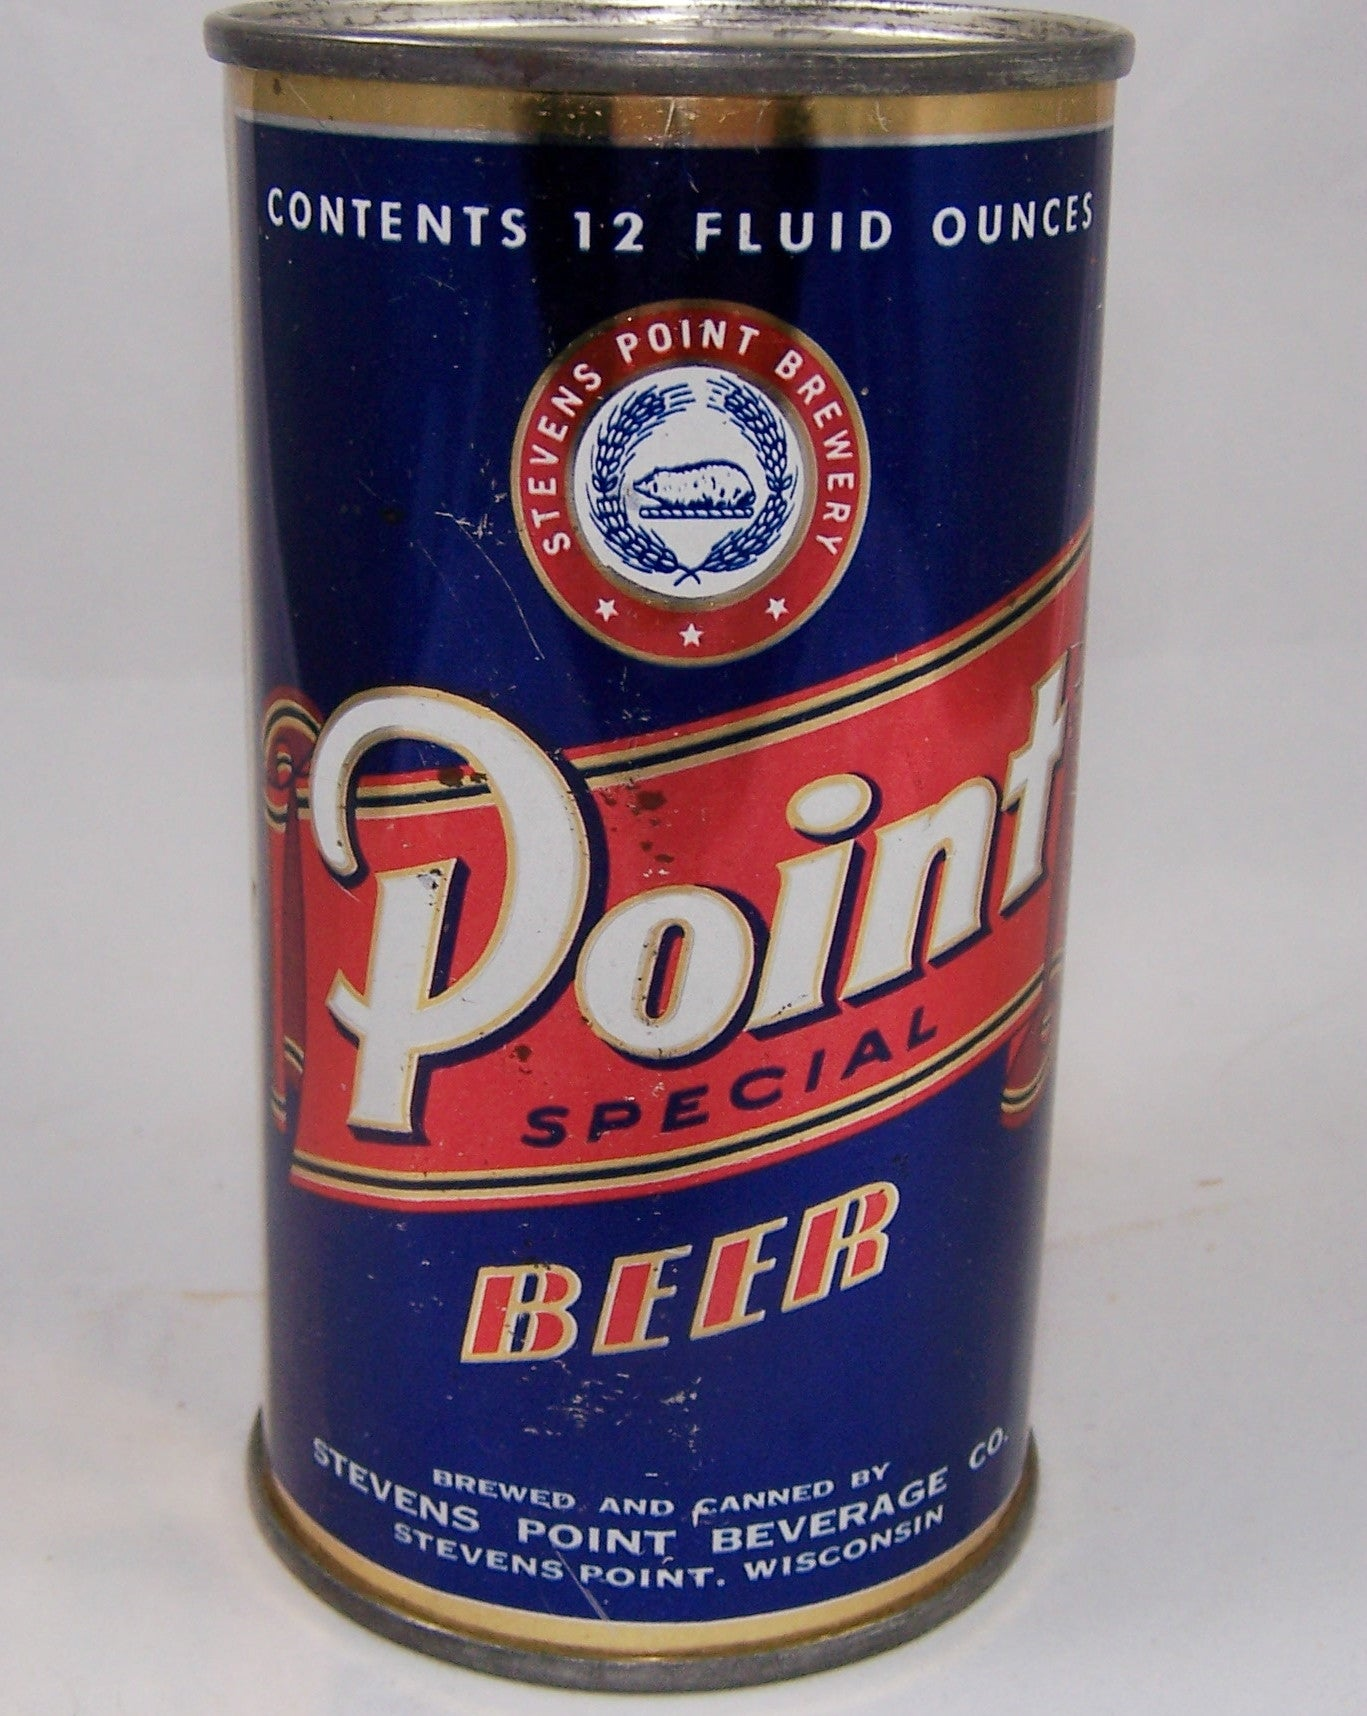 Point Special Beer, USBC 116-18 (ROLLED) Grade 1/1- sold on 04/16/16